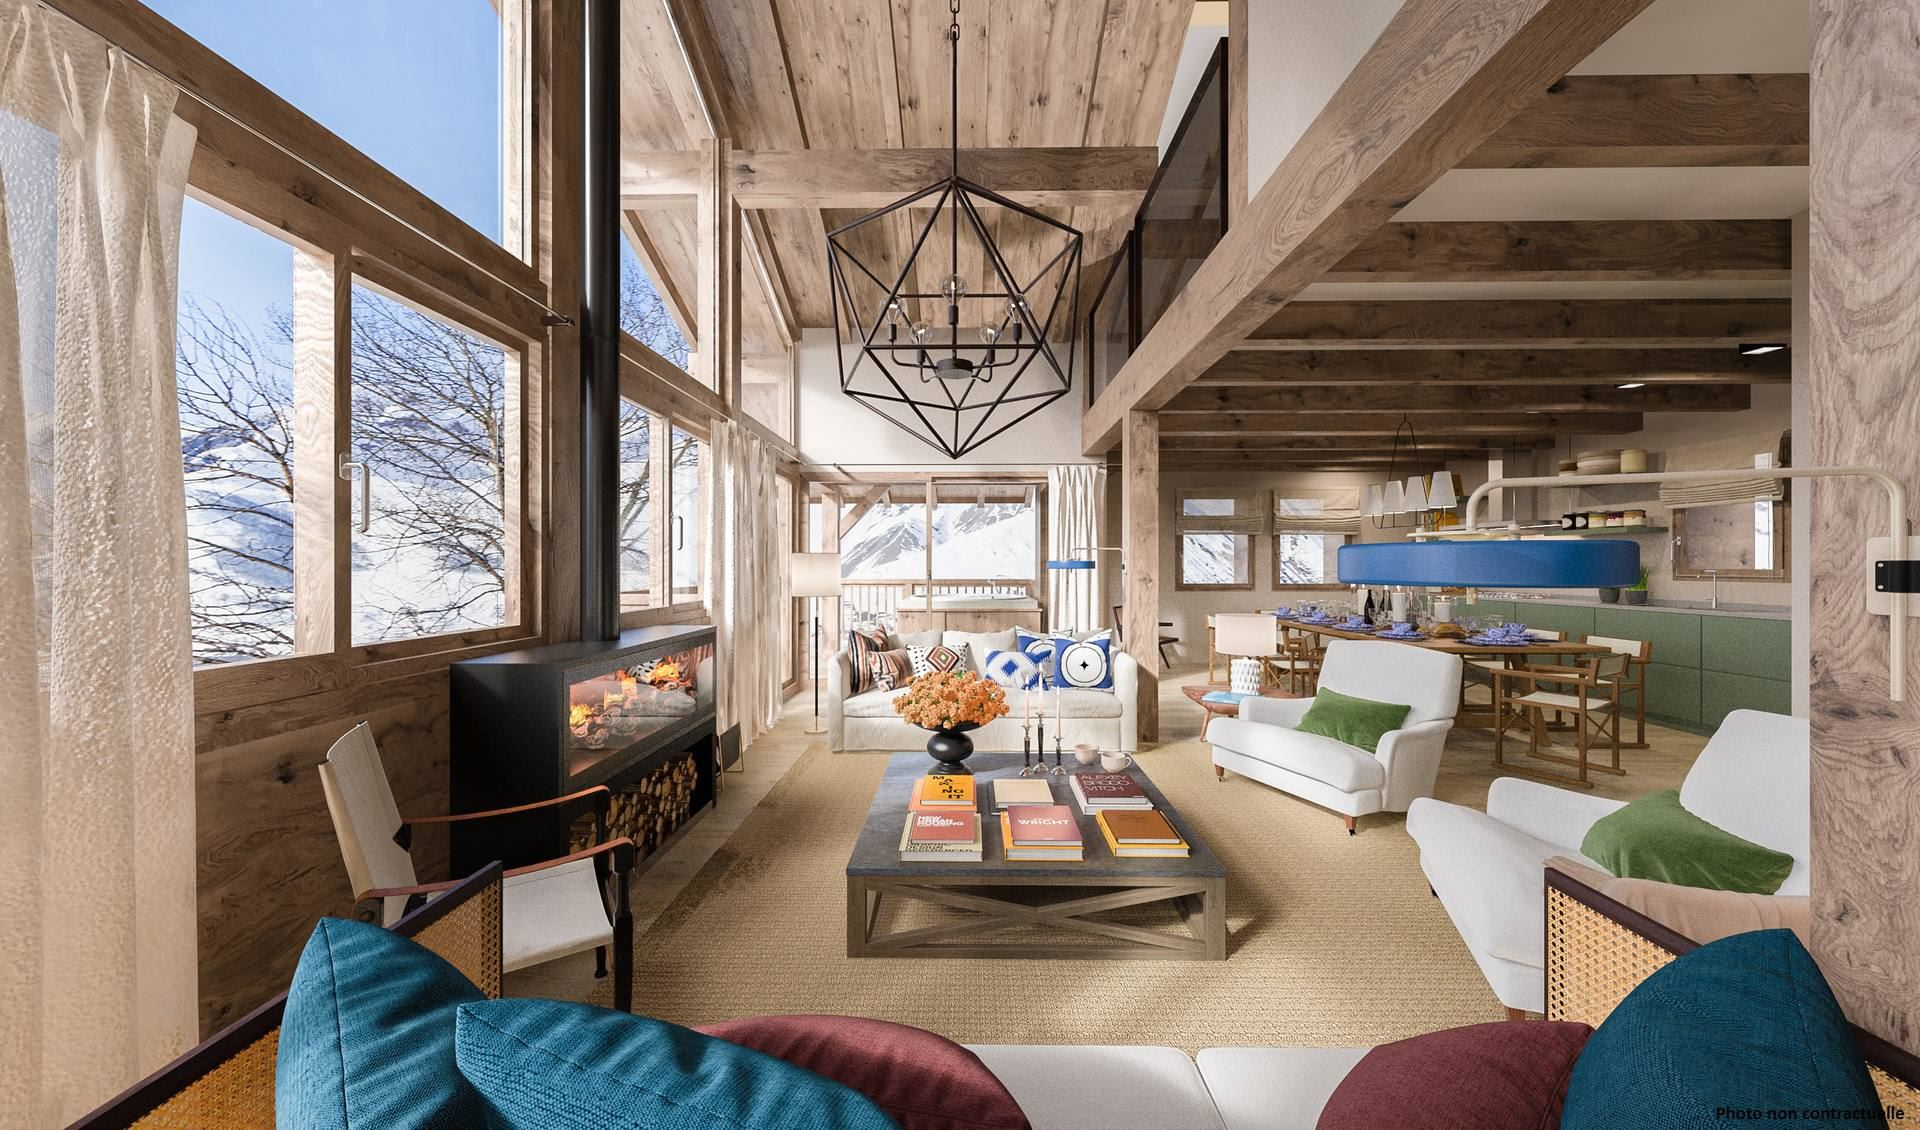 5 Room 8 Pers ski-in ski-out / CASEBLANCHE E15